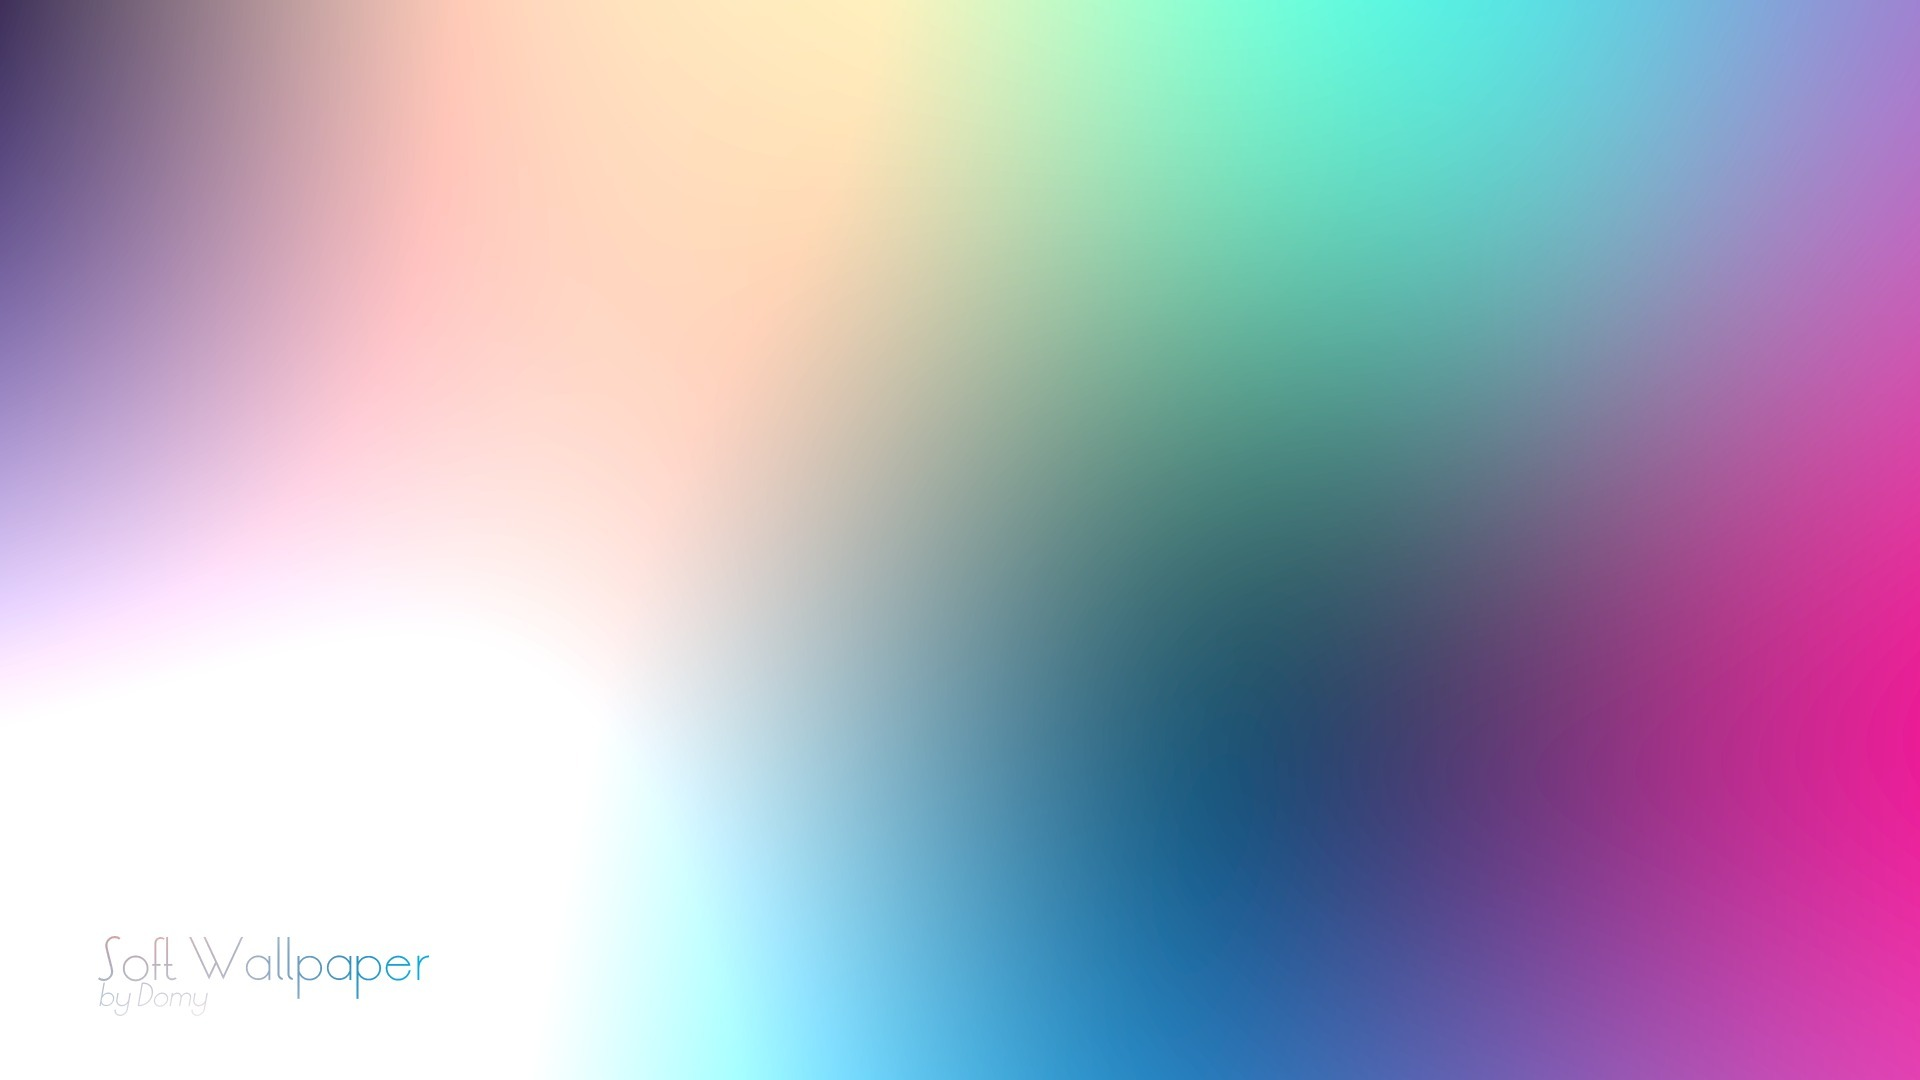 light image wallpapers 001